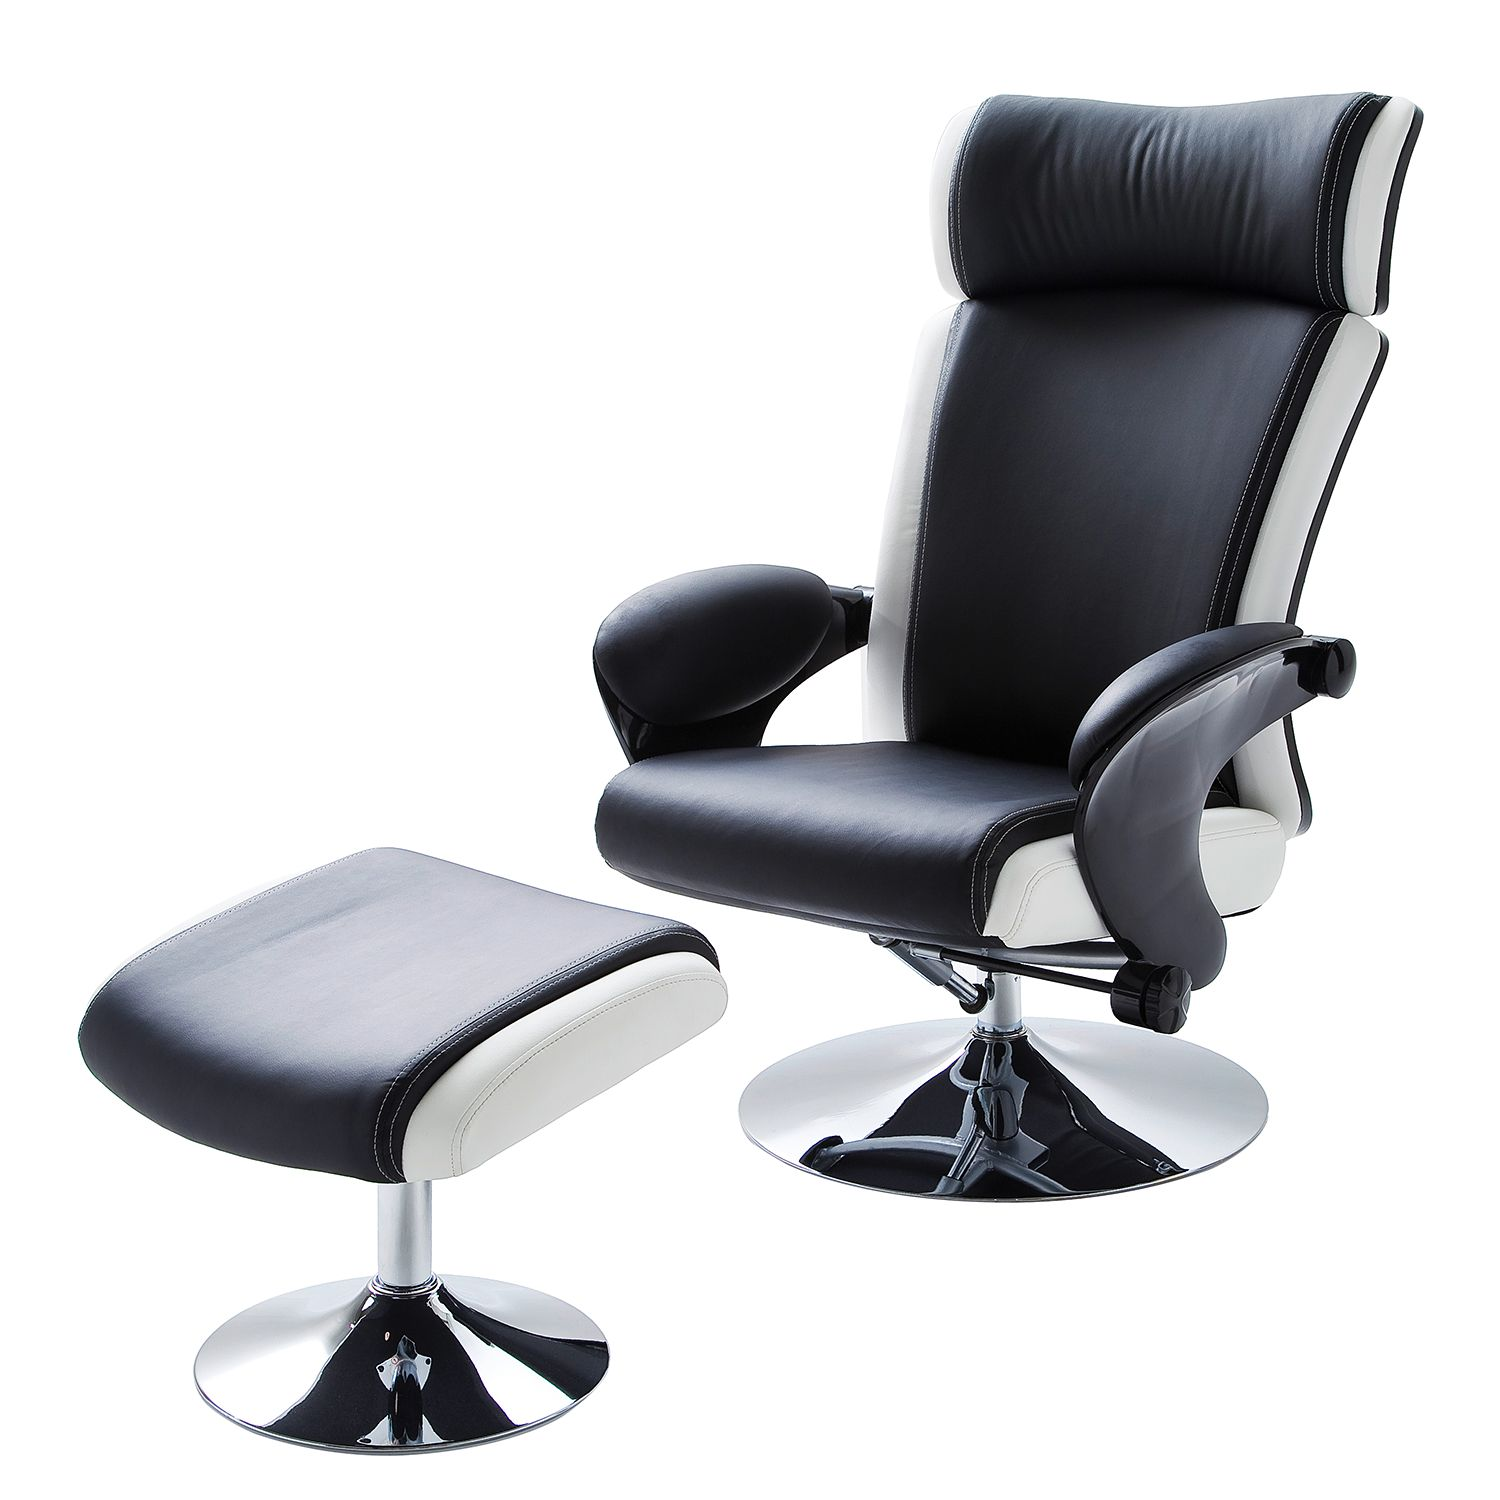 Fauteuil de relaxation Orford